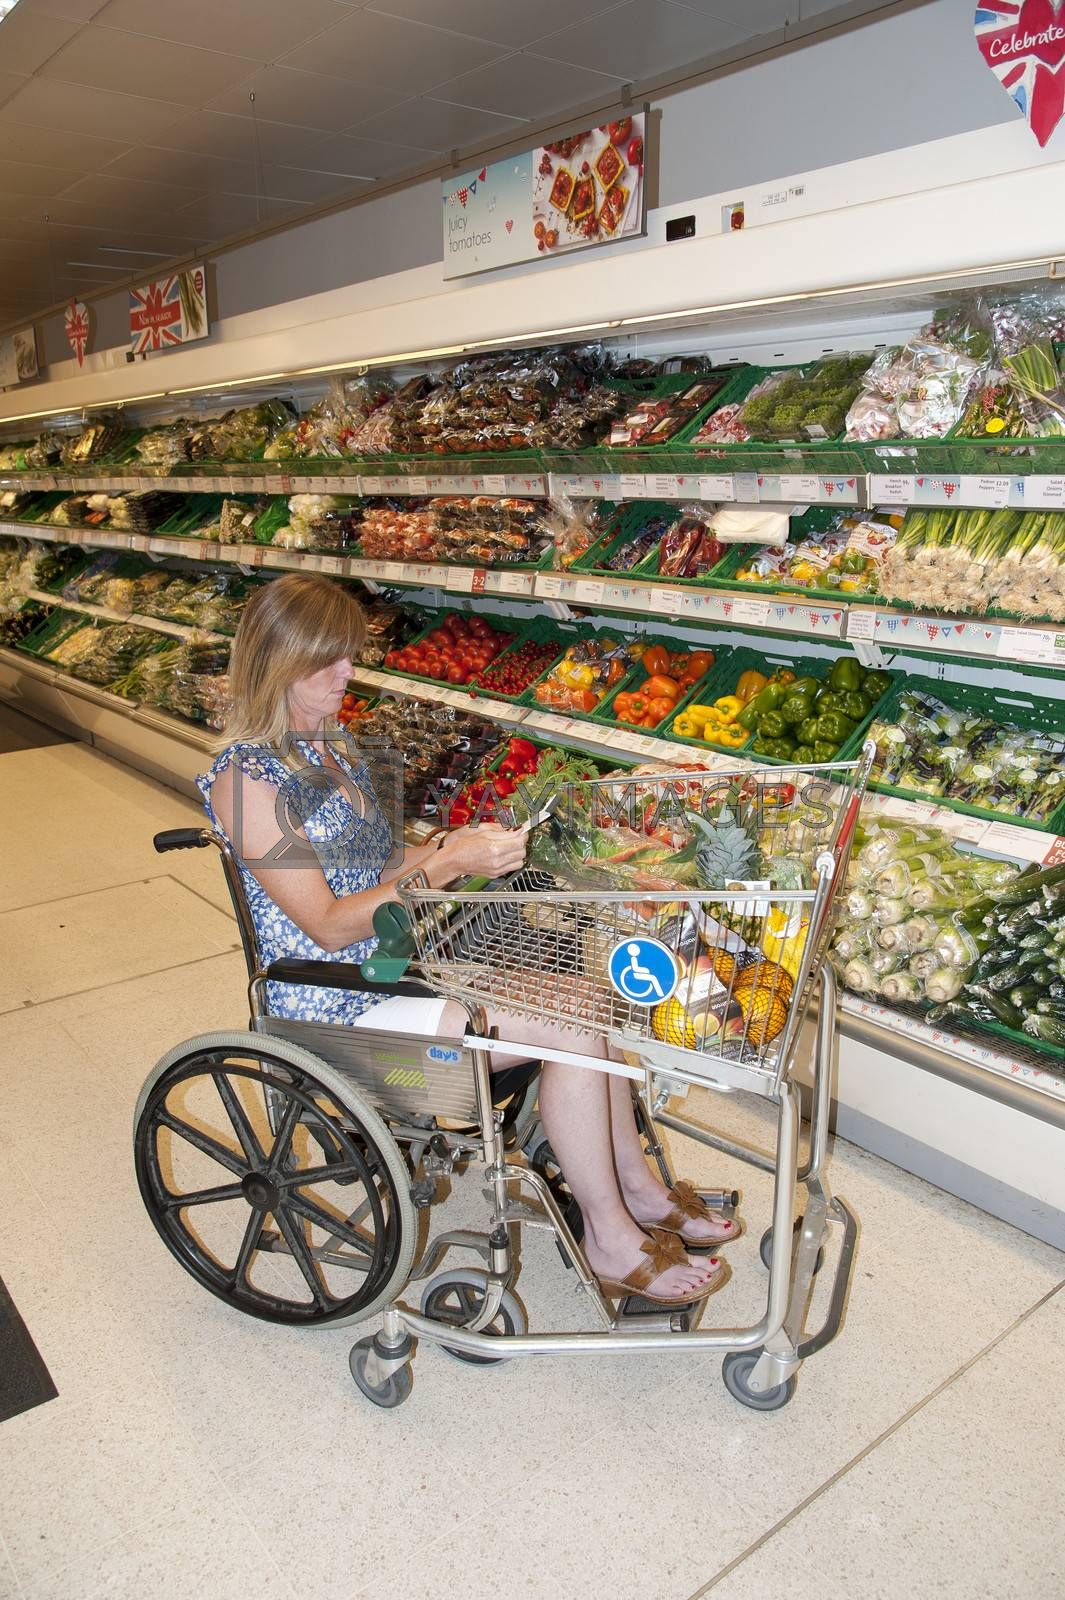 Woman in a wheelchair shopping for vegetables in a supermarket